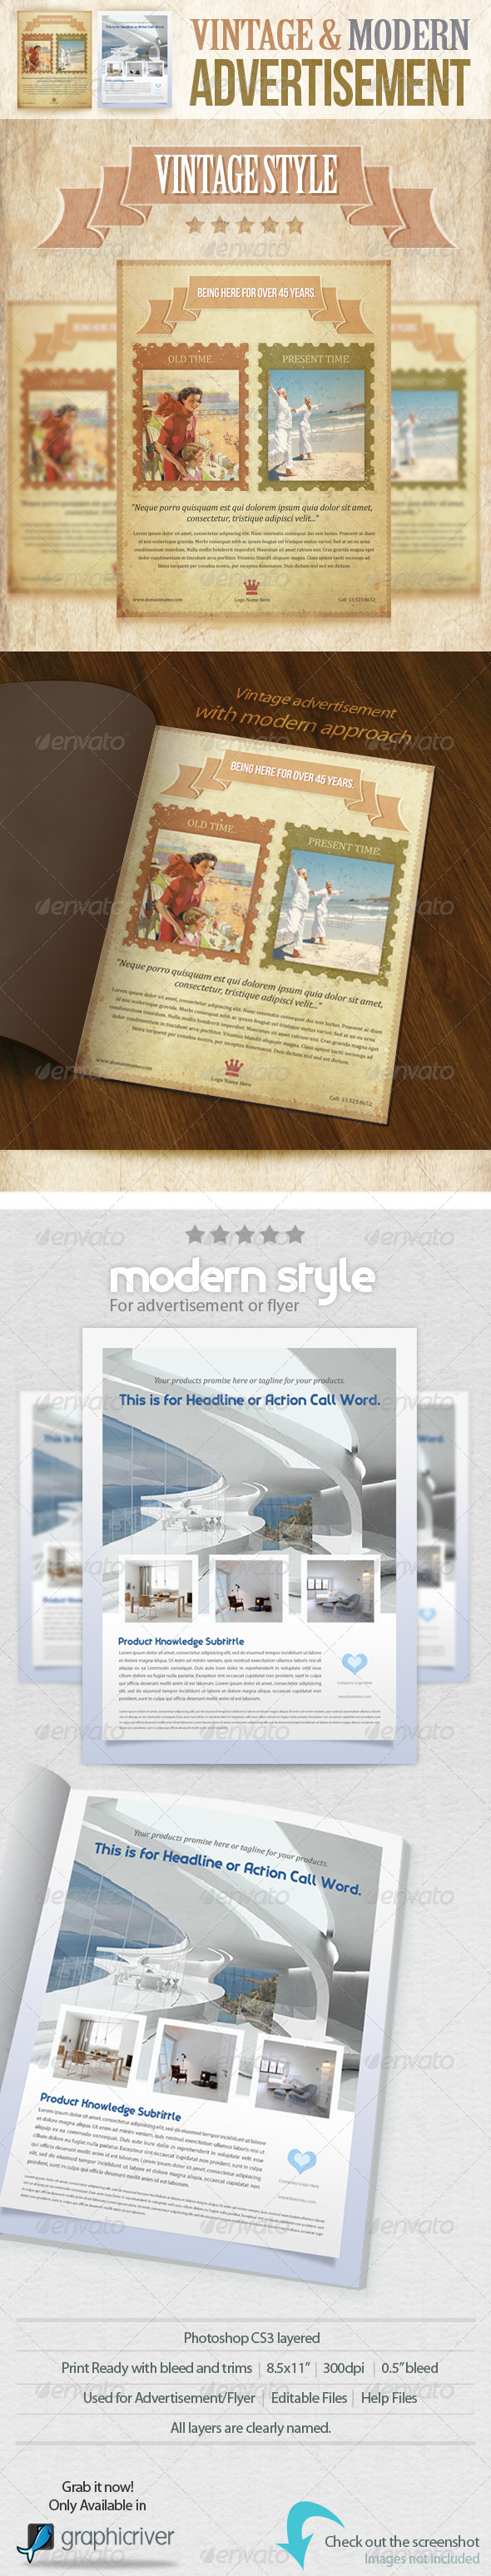 Vintage and Modern Advertisement PSD Template - Corporate Flyers